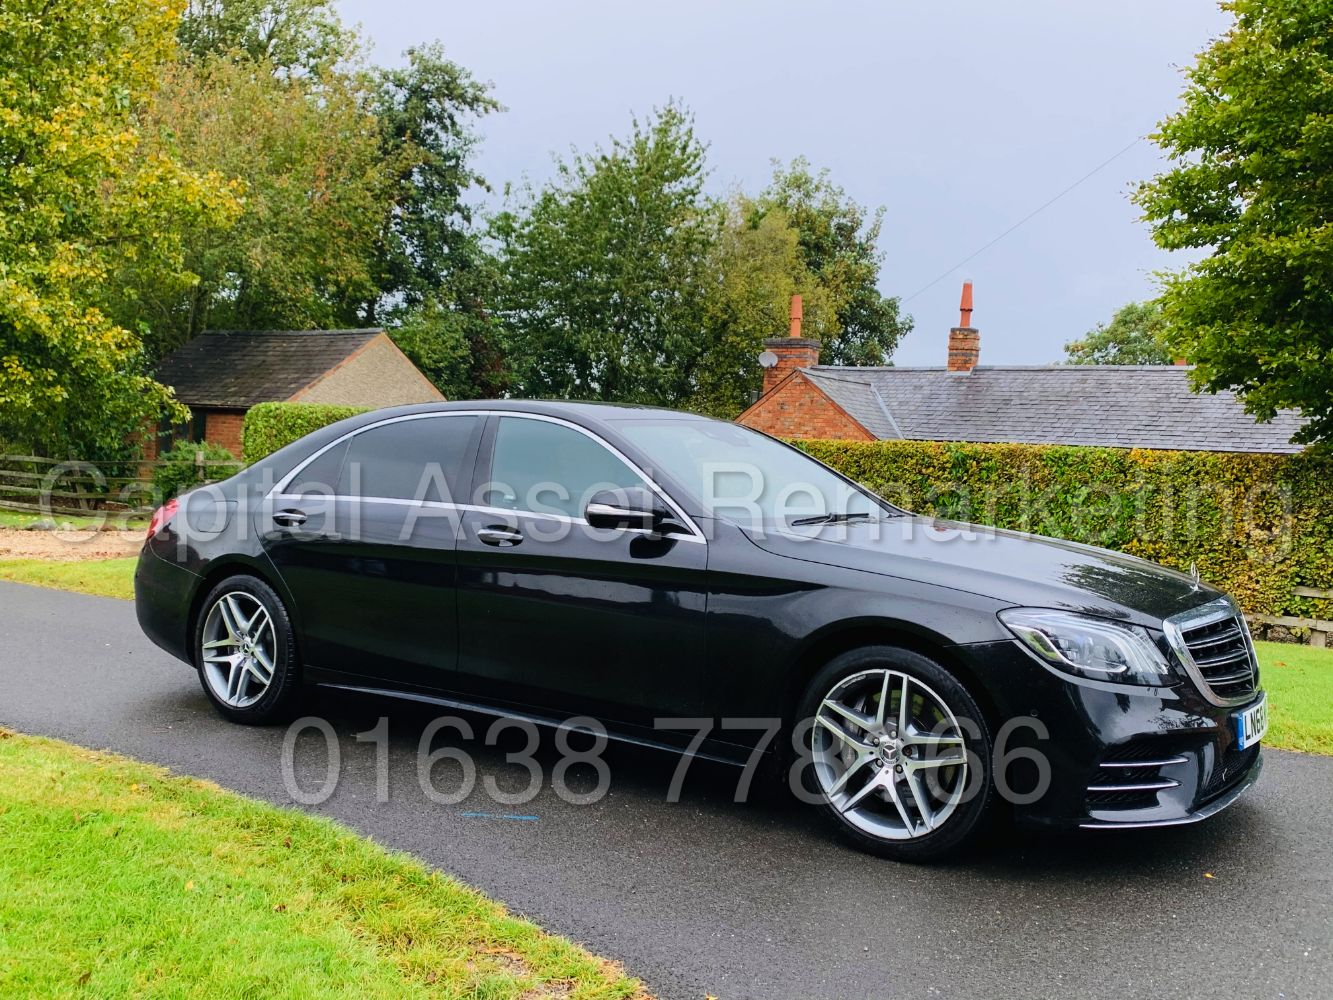 2019 Mercedes-Benz S350d *AMG Line Executive* - 2019 Renault Master *Low Loader - Luton* + Many More: Cars, Commercials & 4x4's !!!